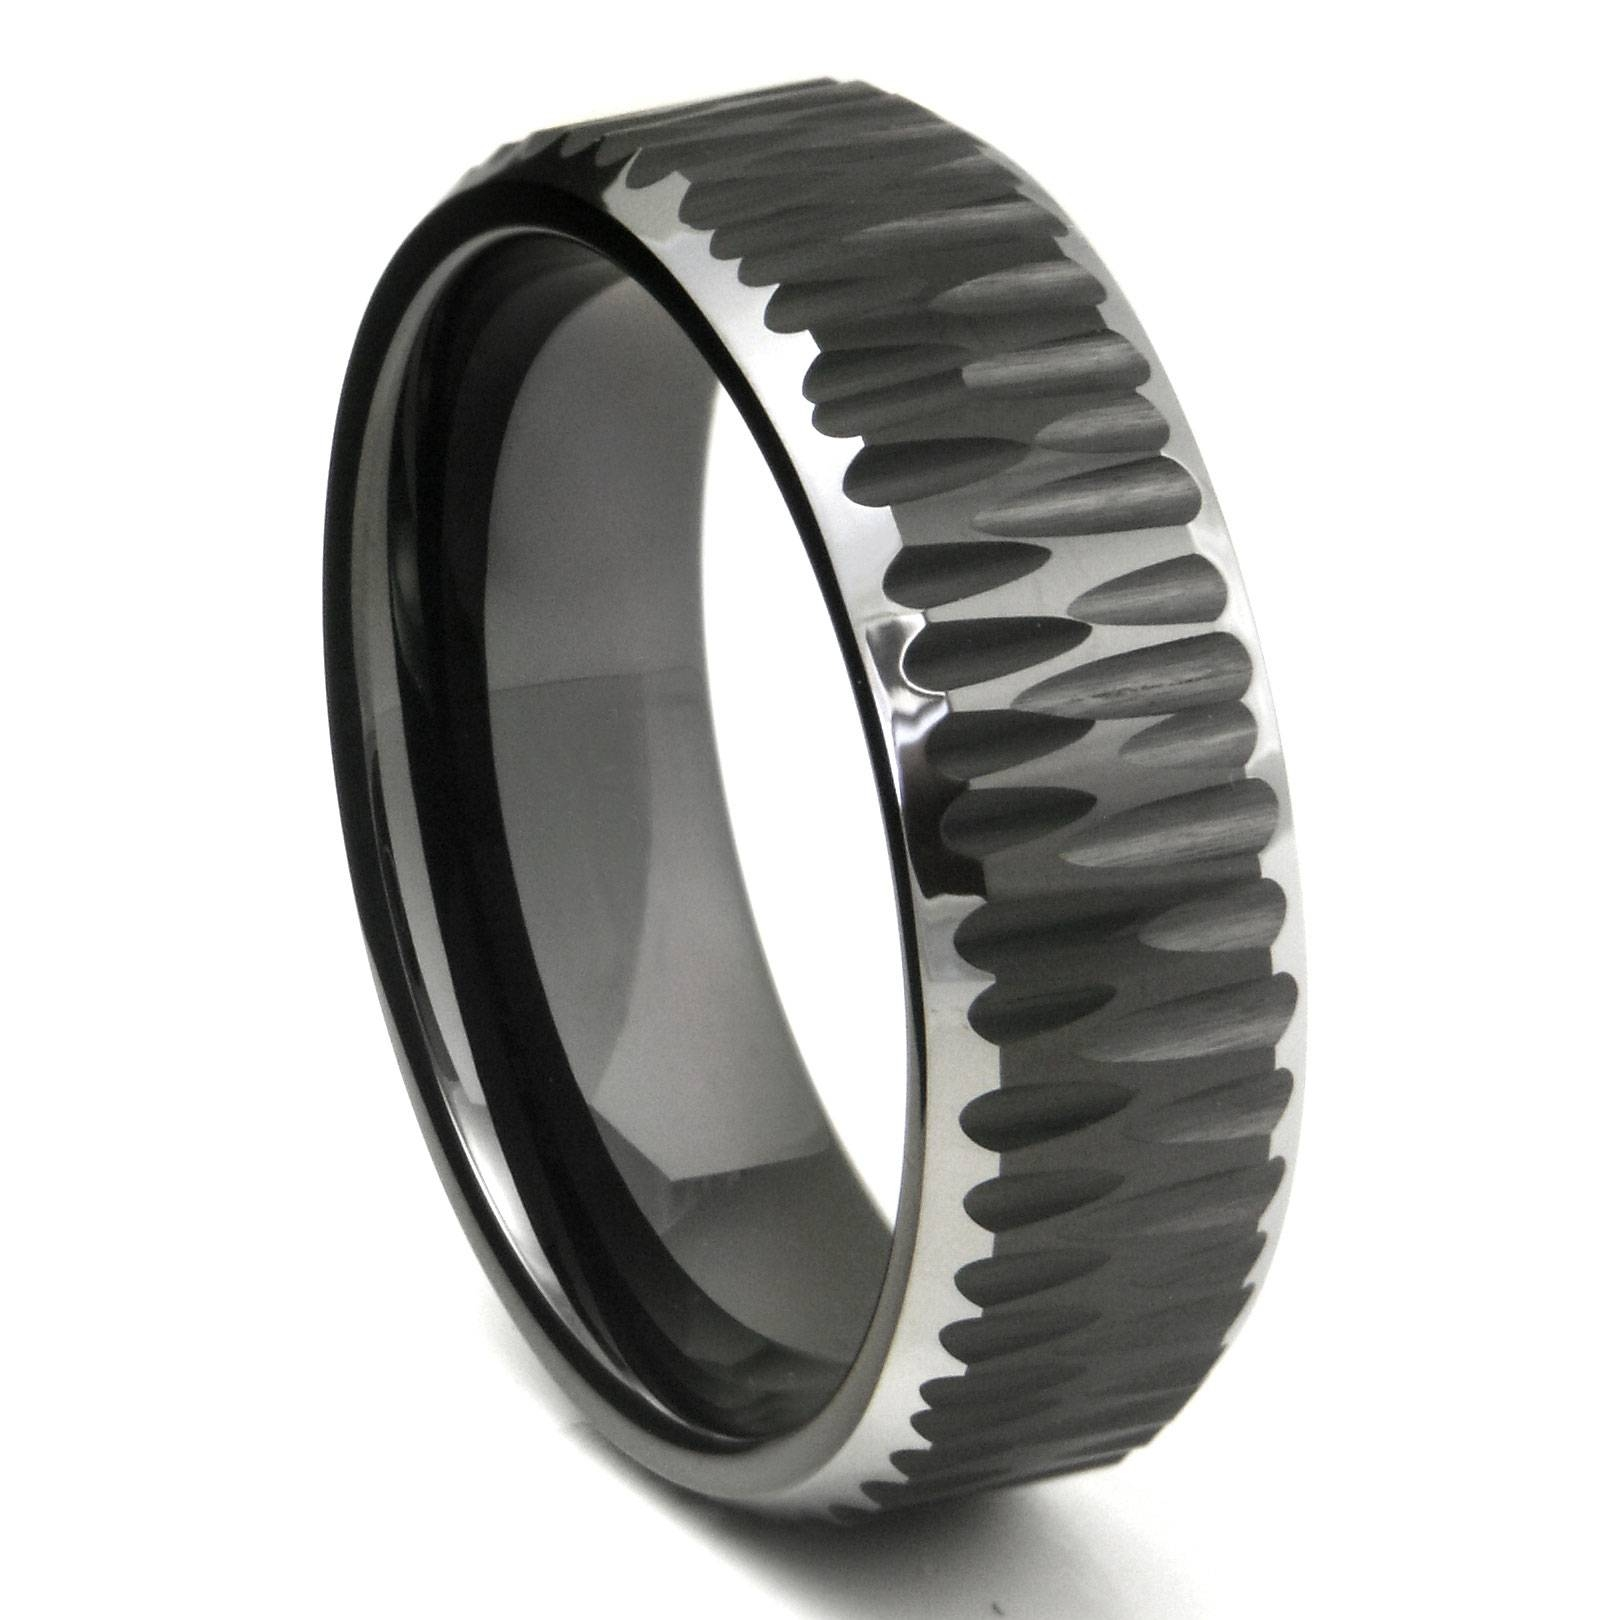 Black Tungsten Carbide Hammer Finish Beveled Wedding Band Ring Pertaining To Mens Black Tungsten Wedding Bands With Diamonds (View 1 of 15)